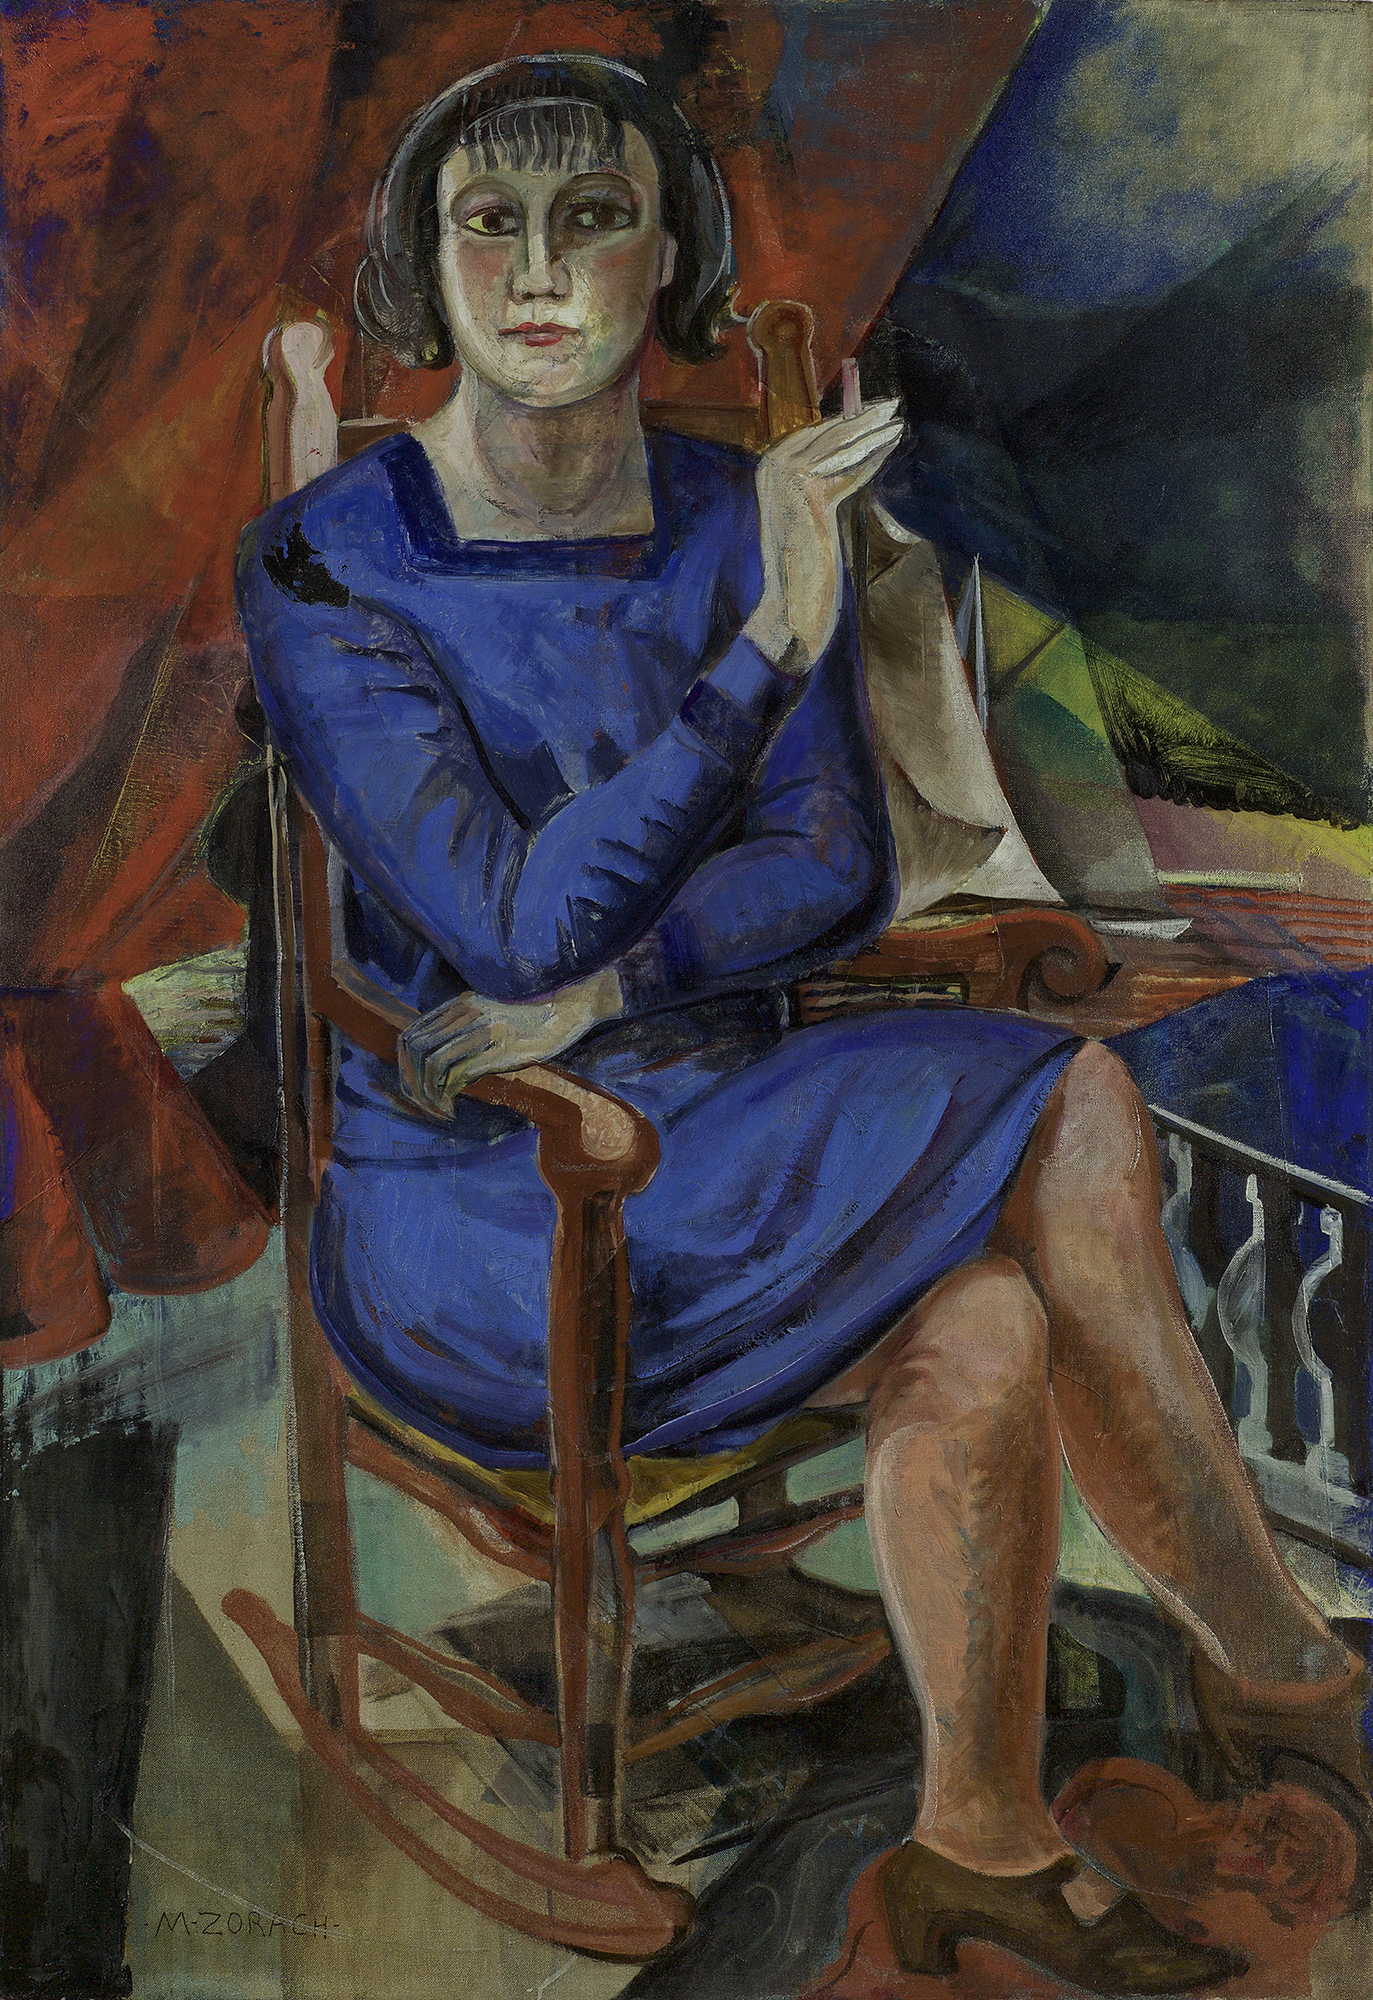 Painting of a woman in a blue dress sitting on a rocking chair smoking against a cubist-looking, geometric background